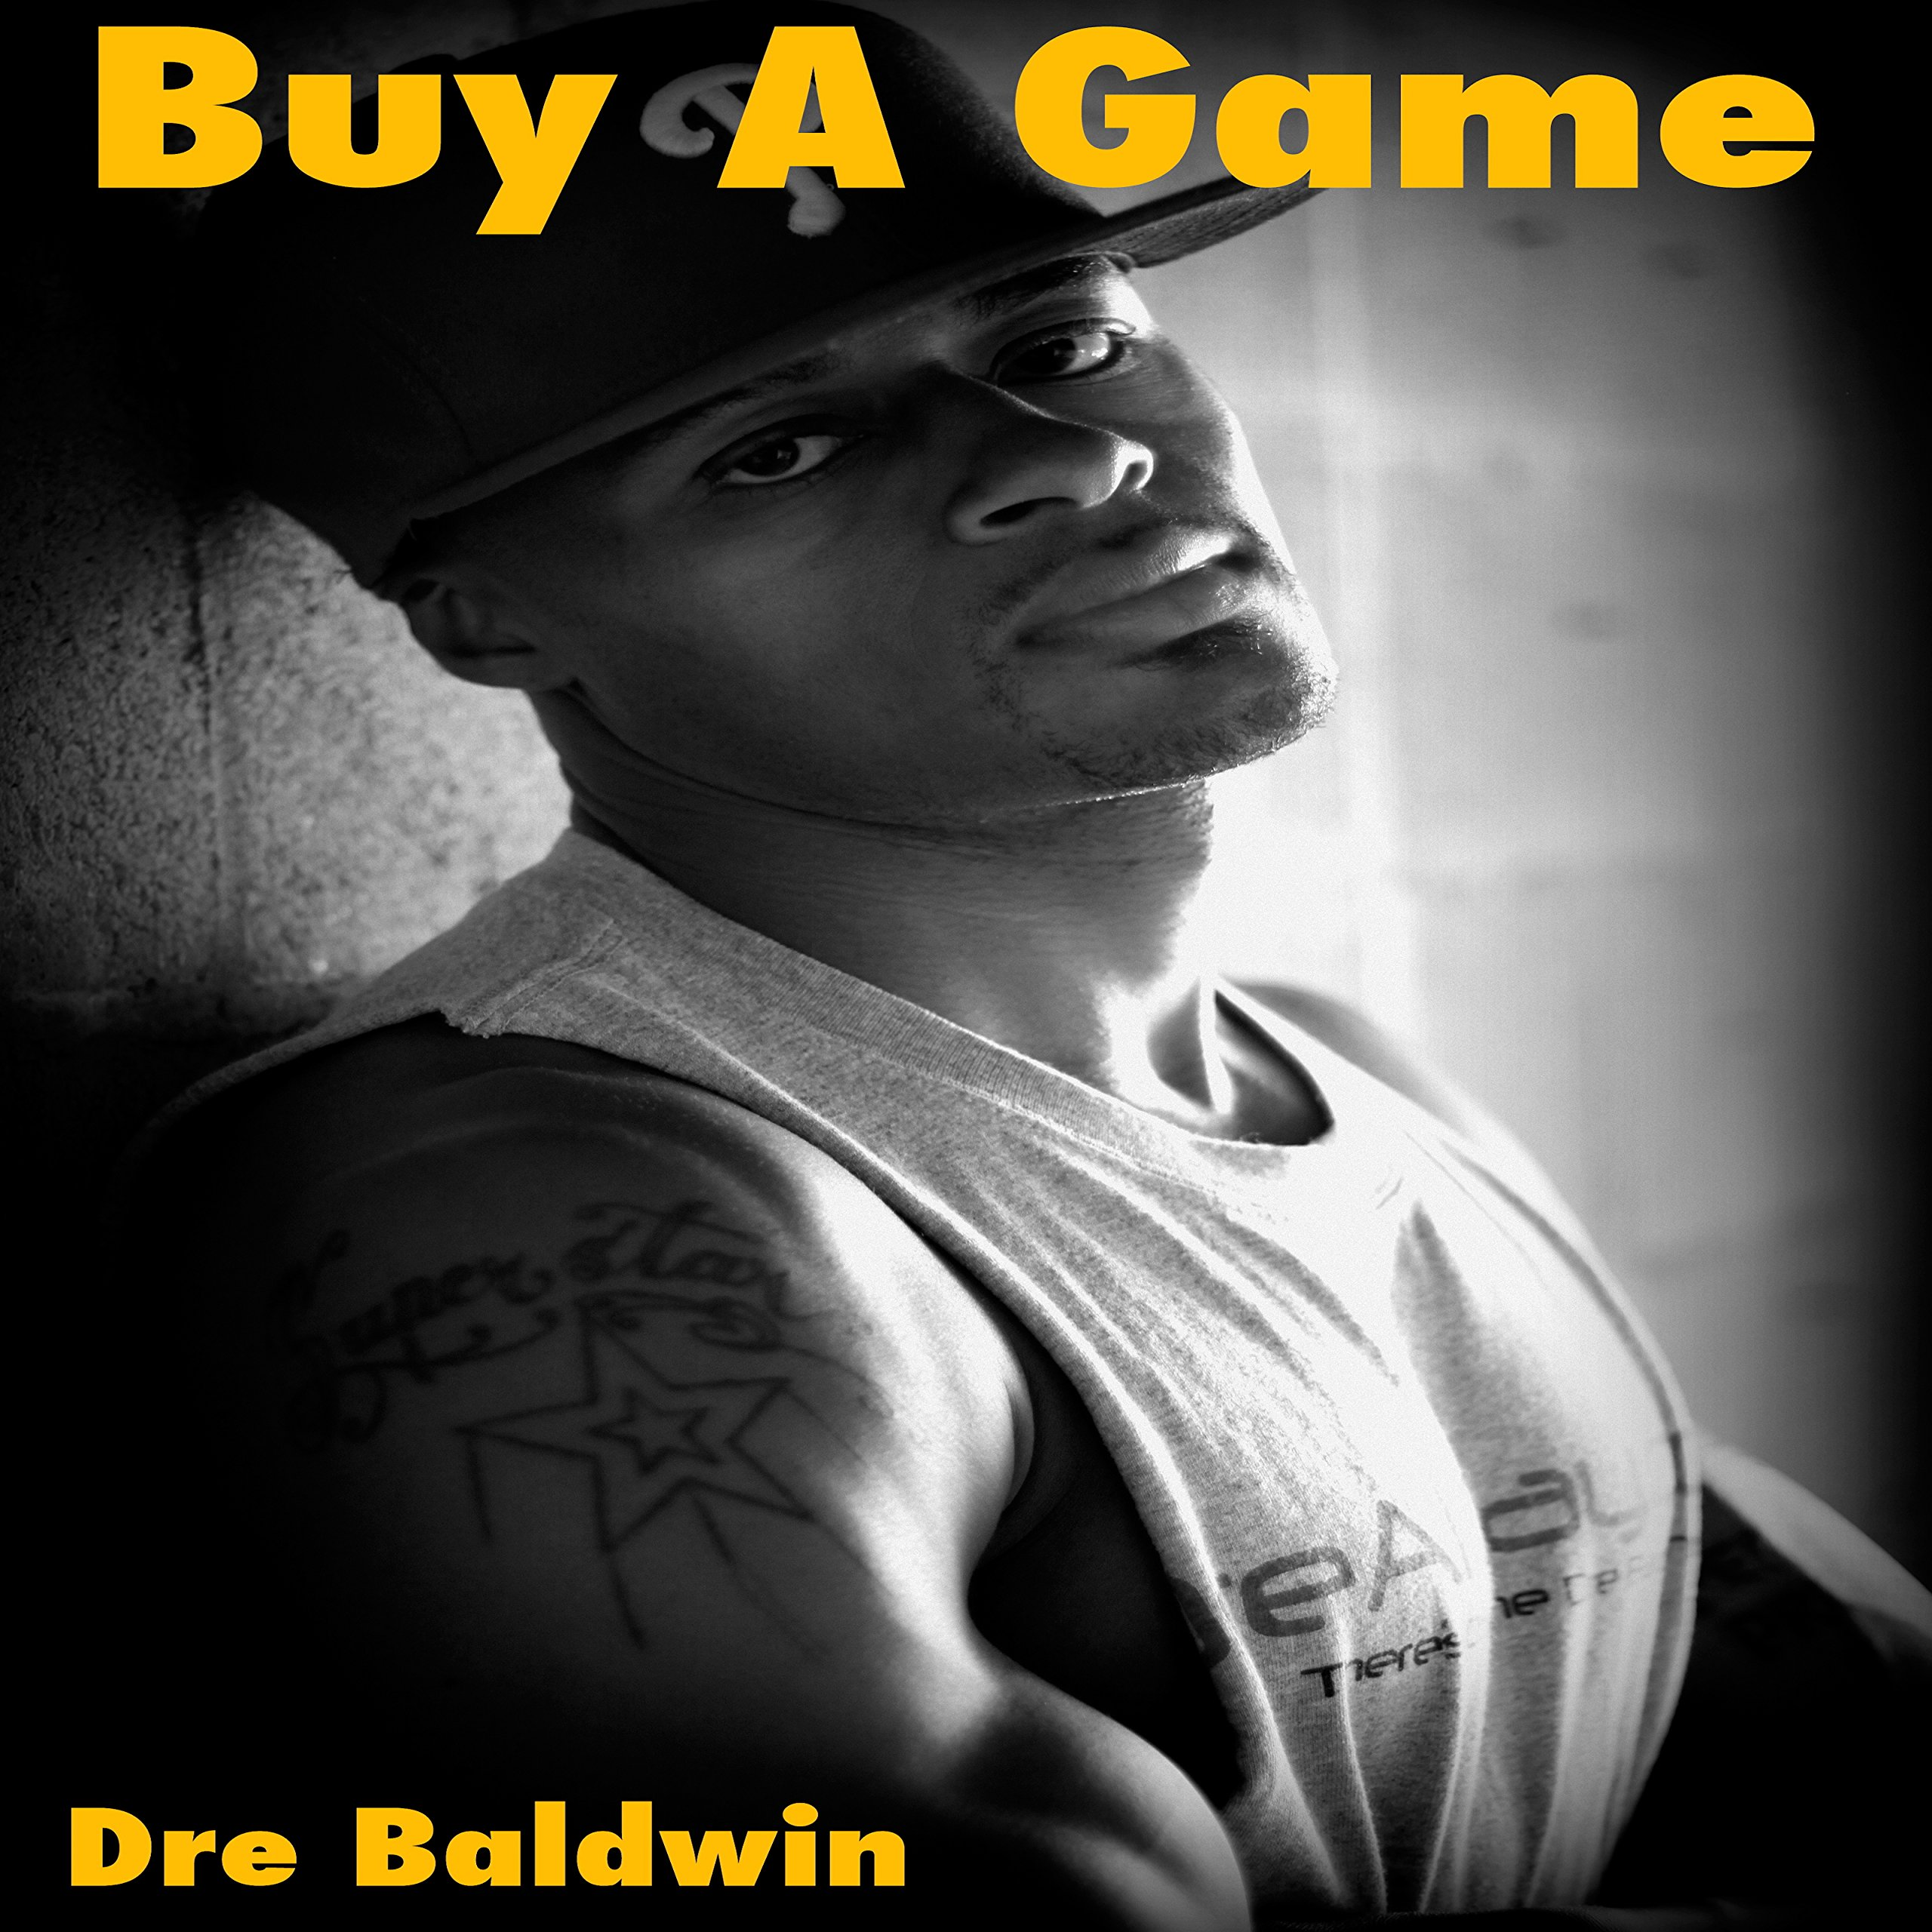 Buy a Game: Dre Baldwin's Early Basketball Story